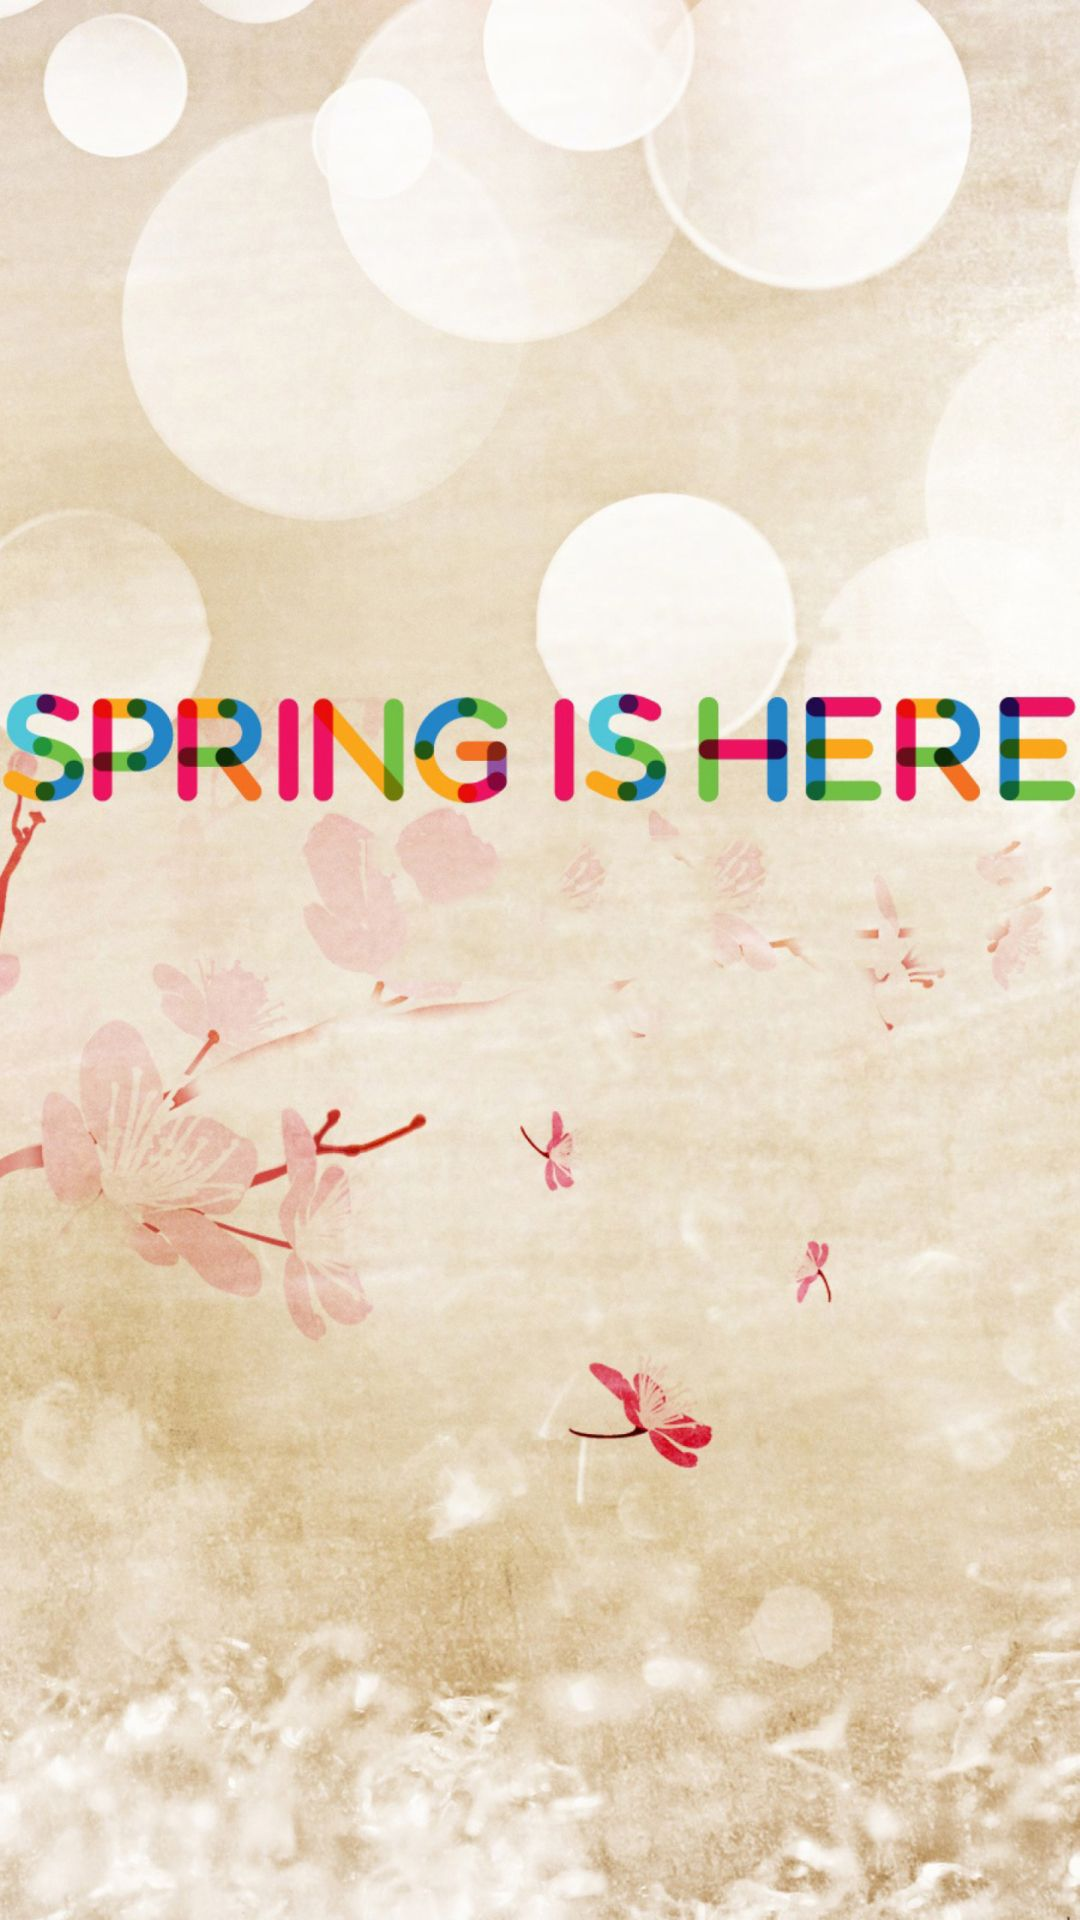 Spring Is Here Wallpaper